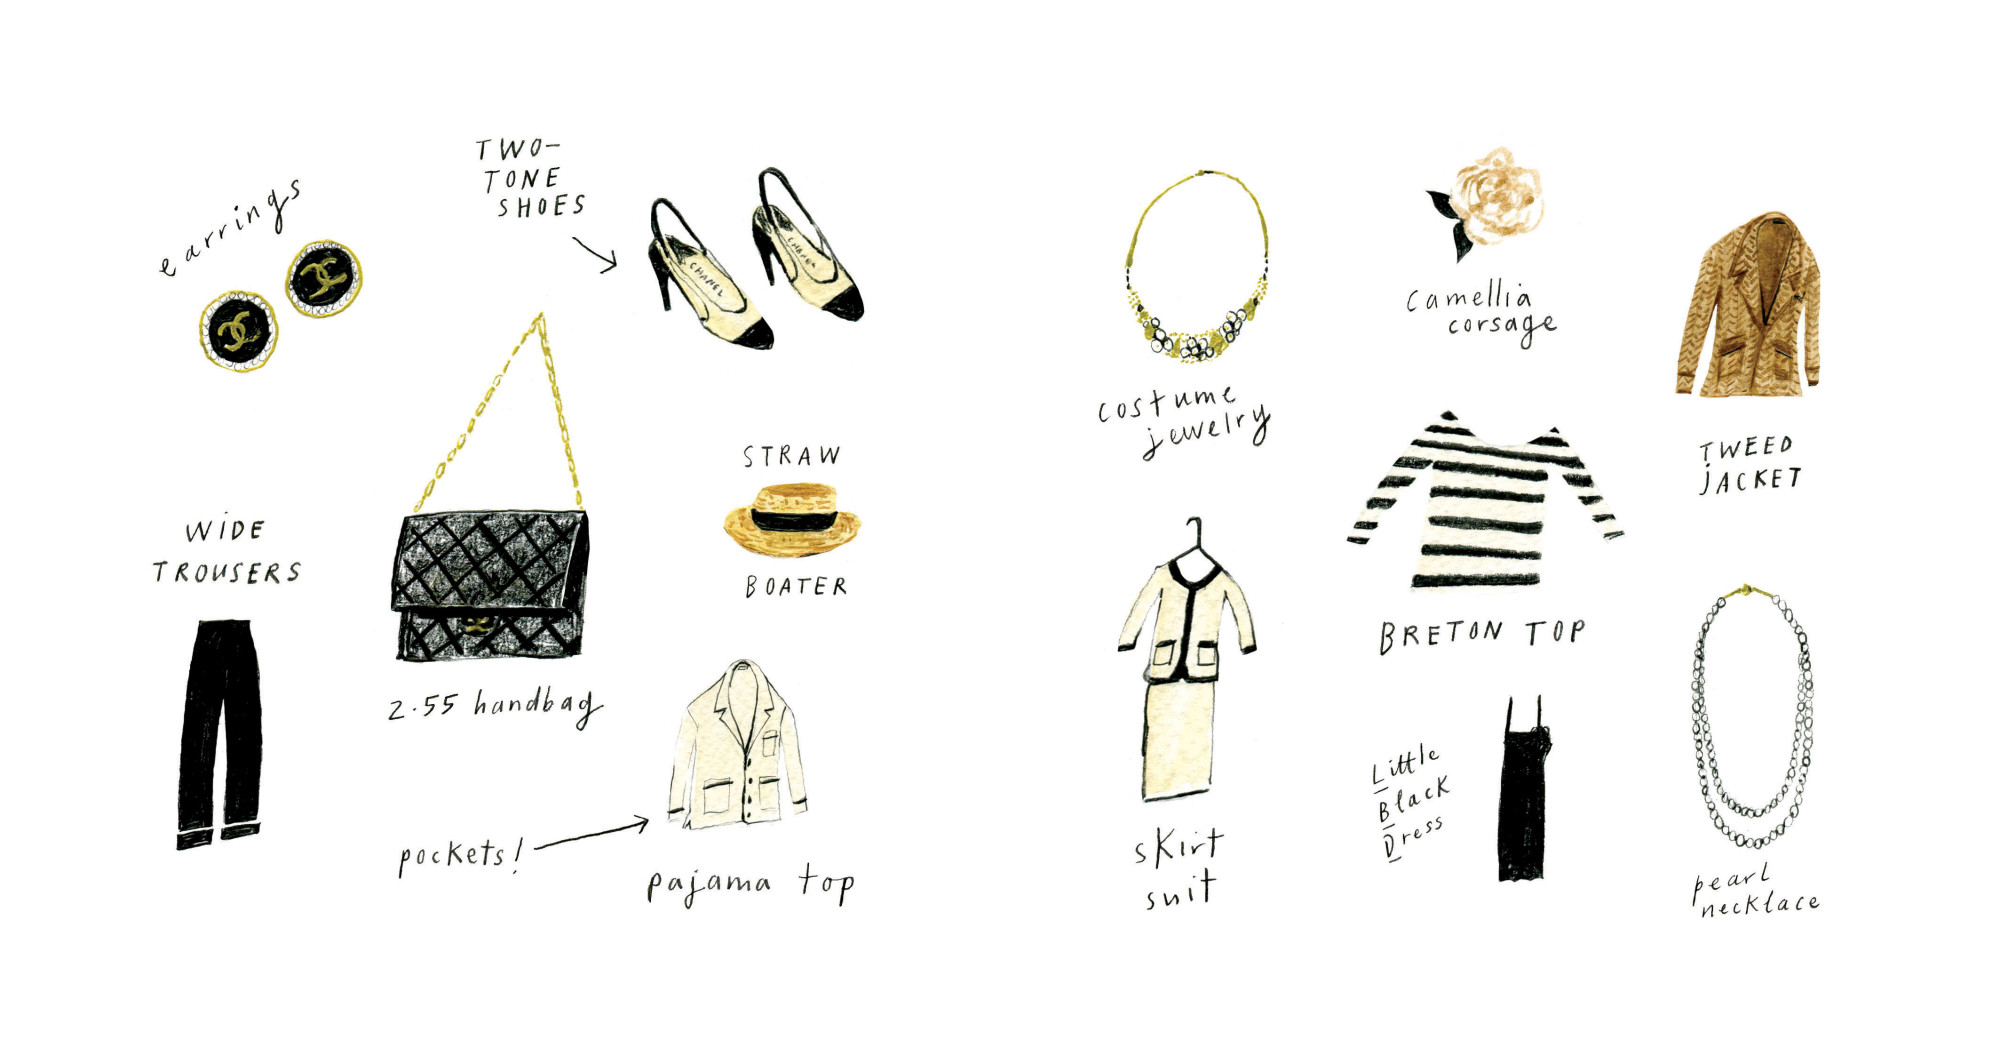 Coco Chanel Illustrated Biography 2